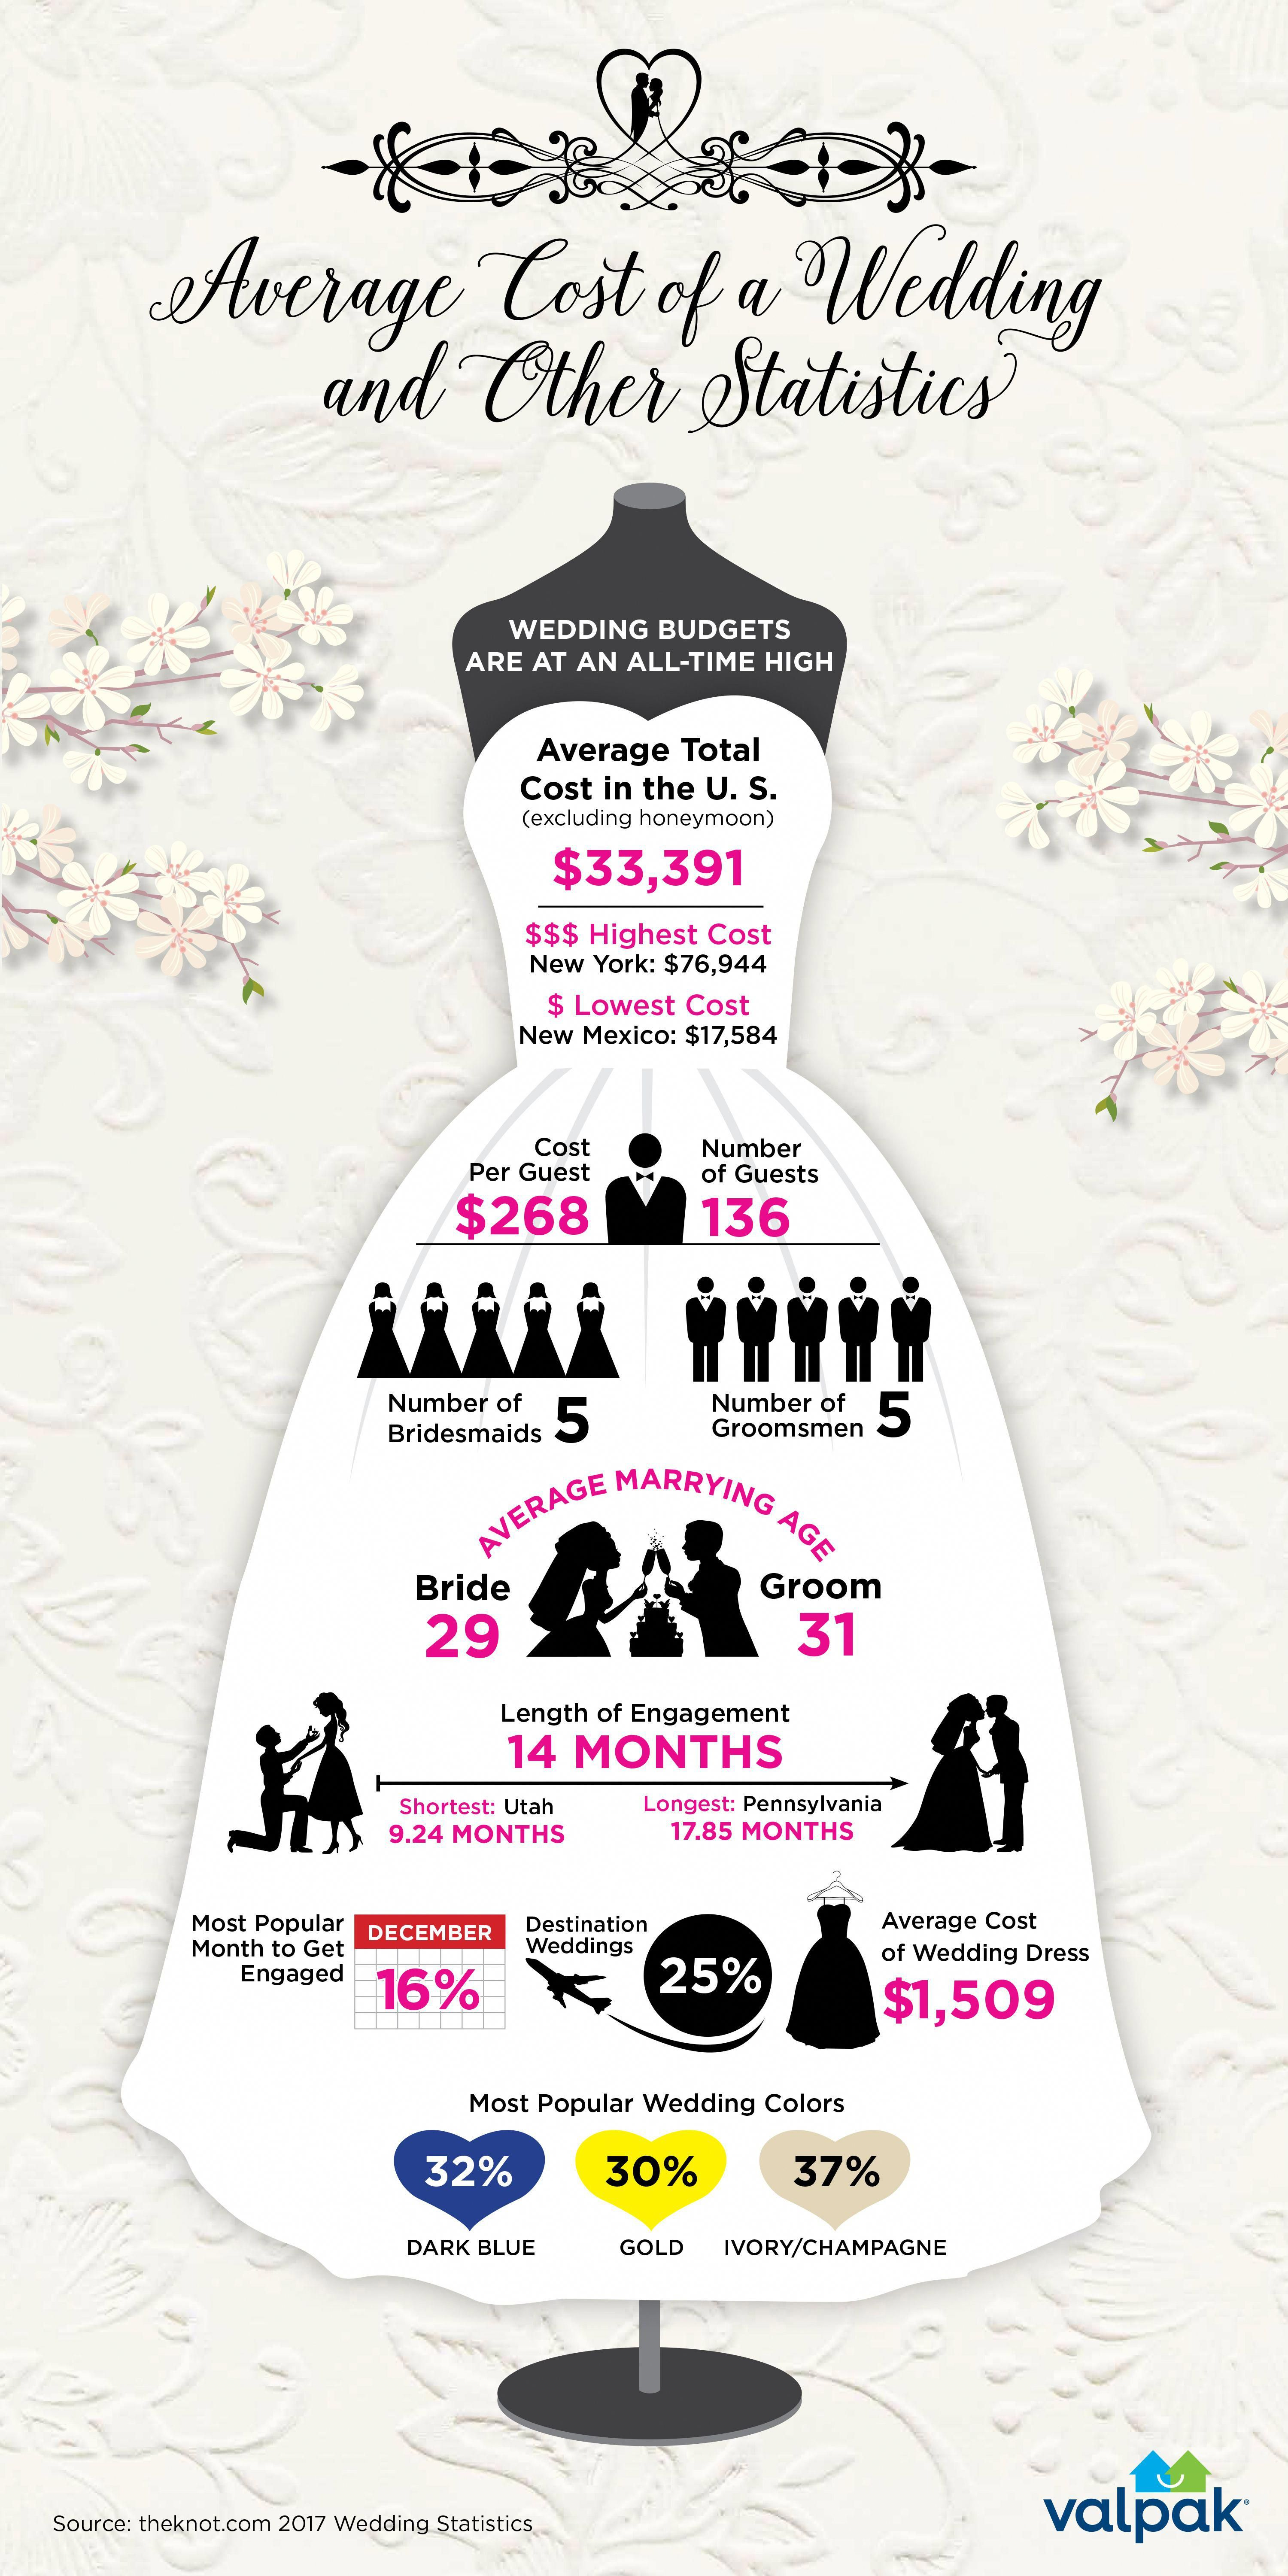 Average Cost Of A Small Wedding.Did You Know The Average Cost Of A Wedding In 2017 Was 33k Let